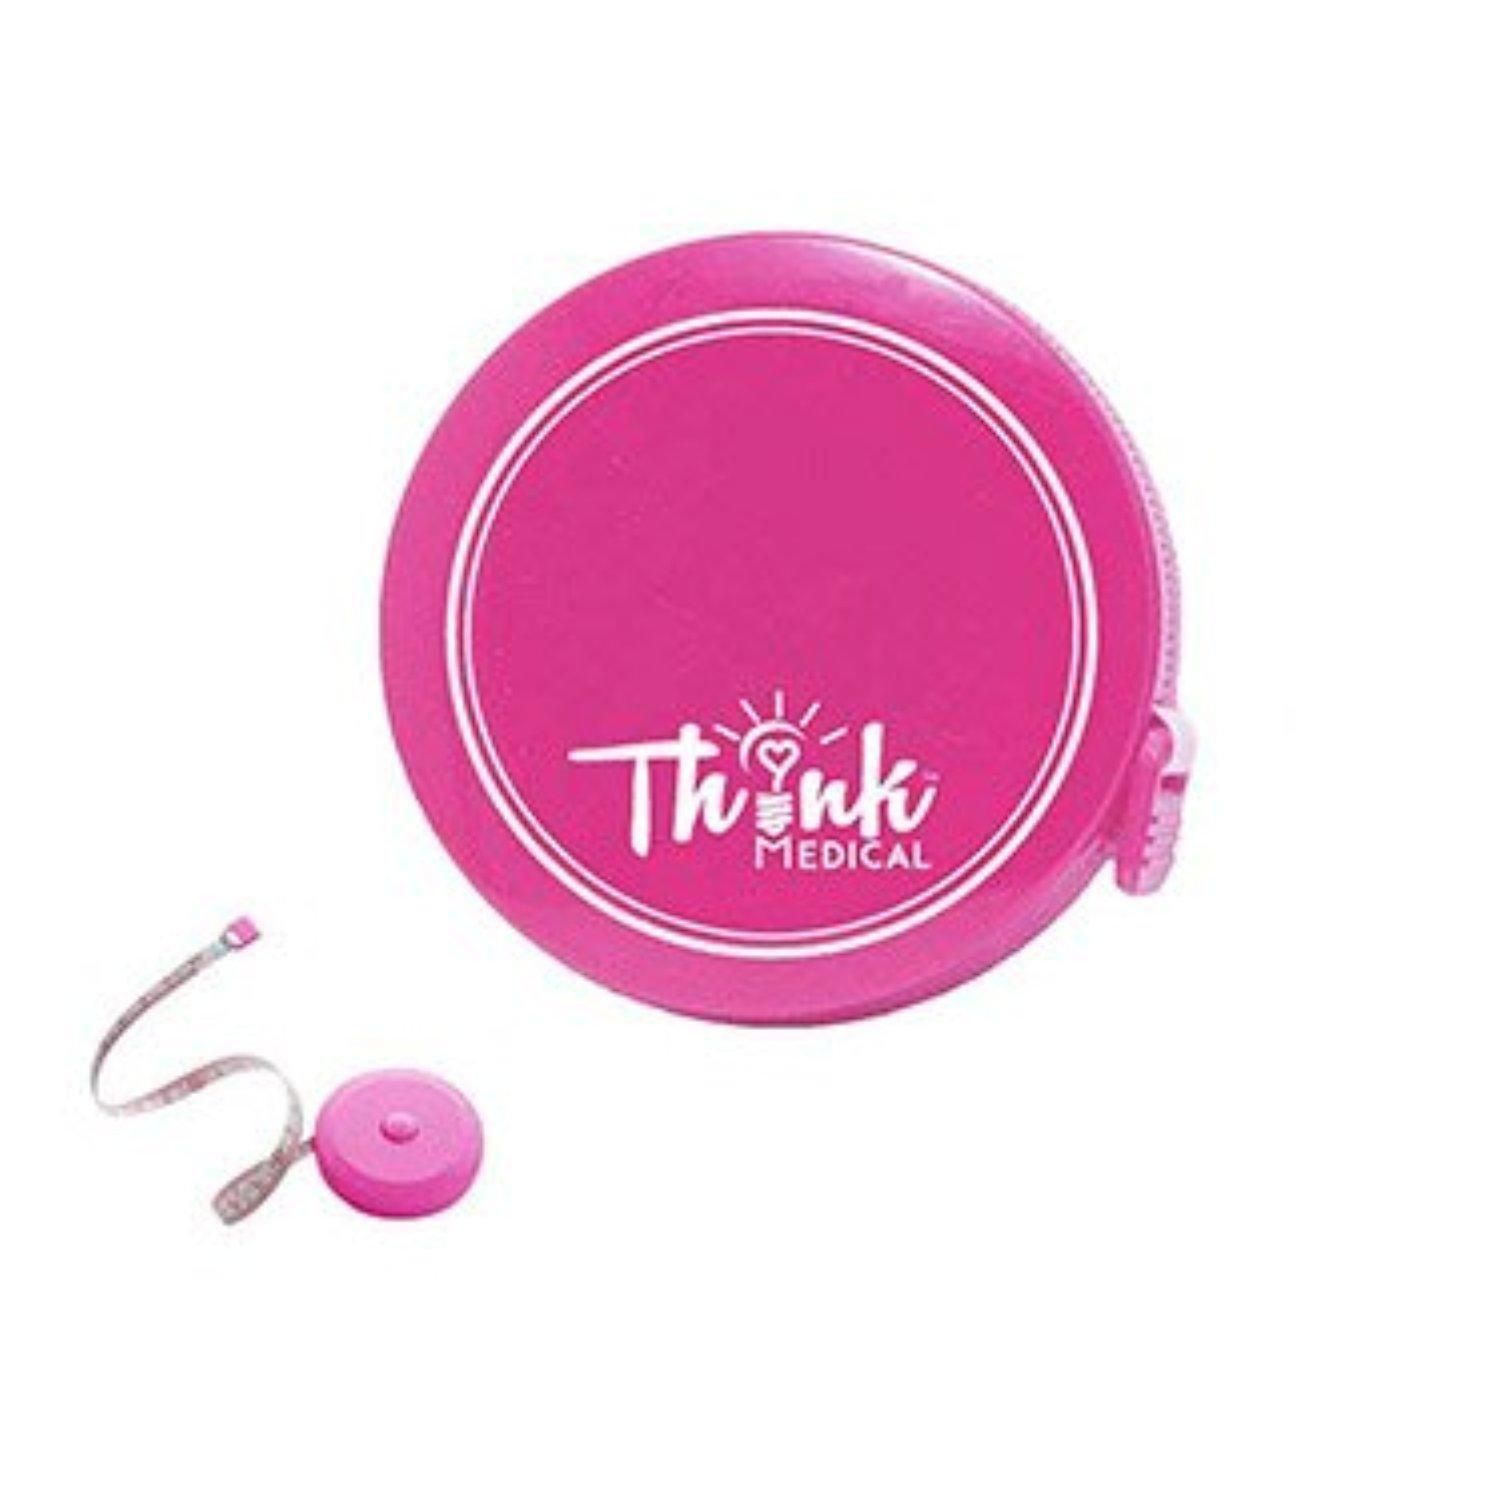 Think Medical 60 Tape Measure - Brought to you by Avarsha.com